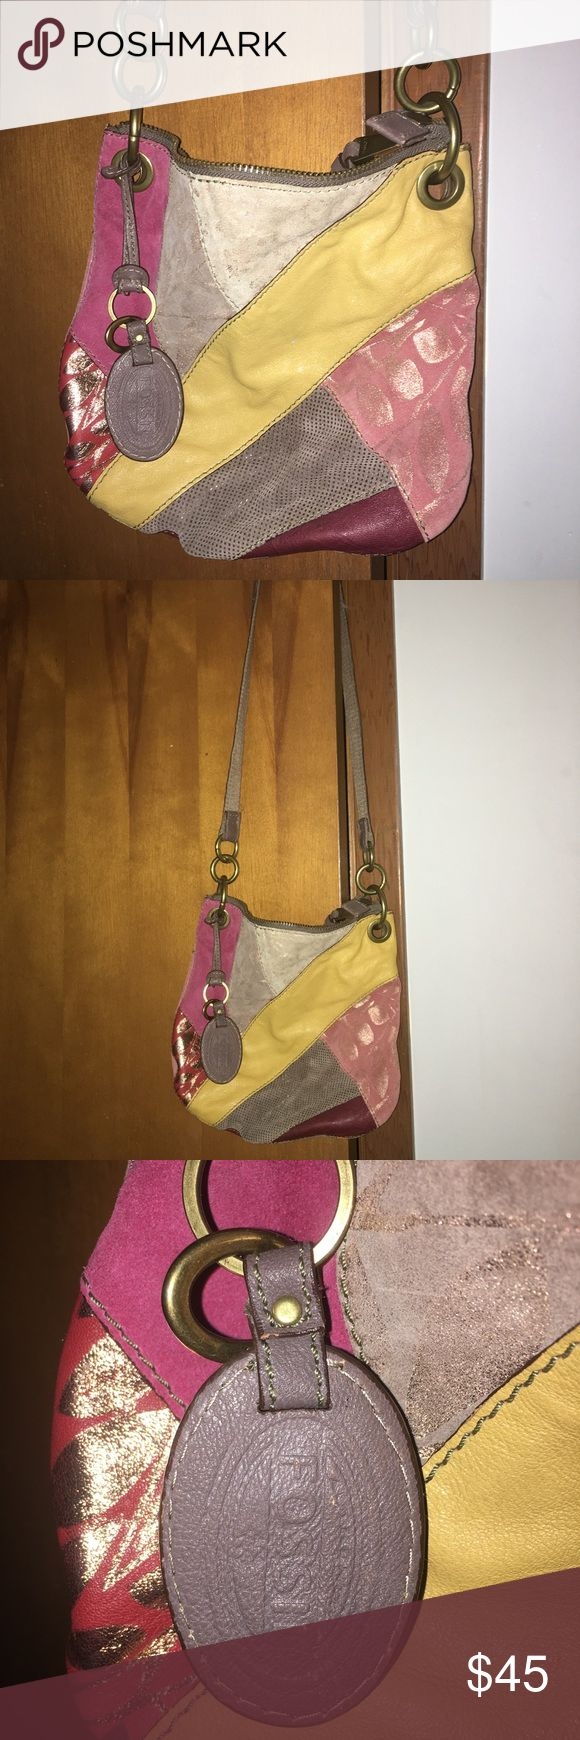 Fossil bag Really cute cross body fossil bag. Gently used. Make an offer Fossil Bags Crossbody Bags